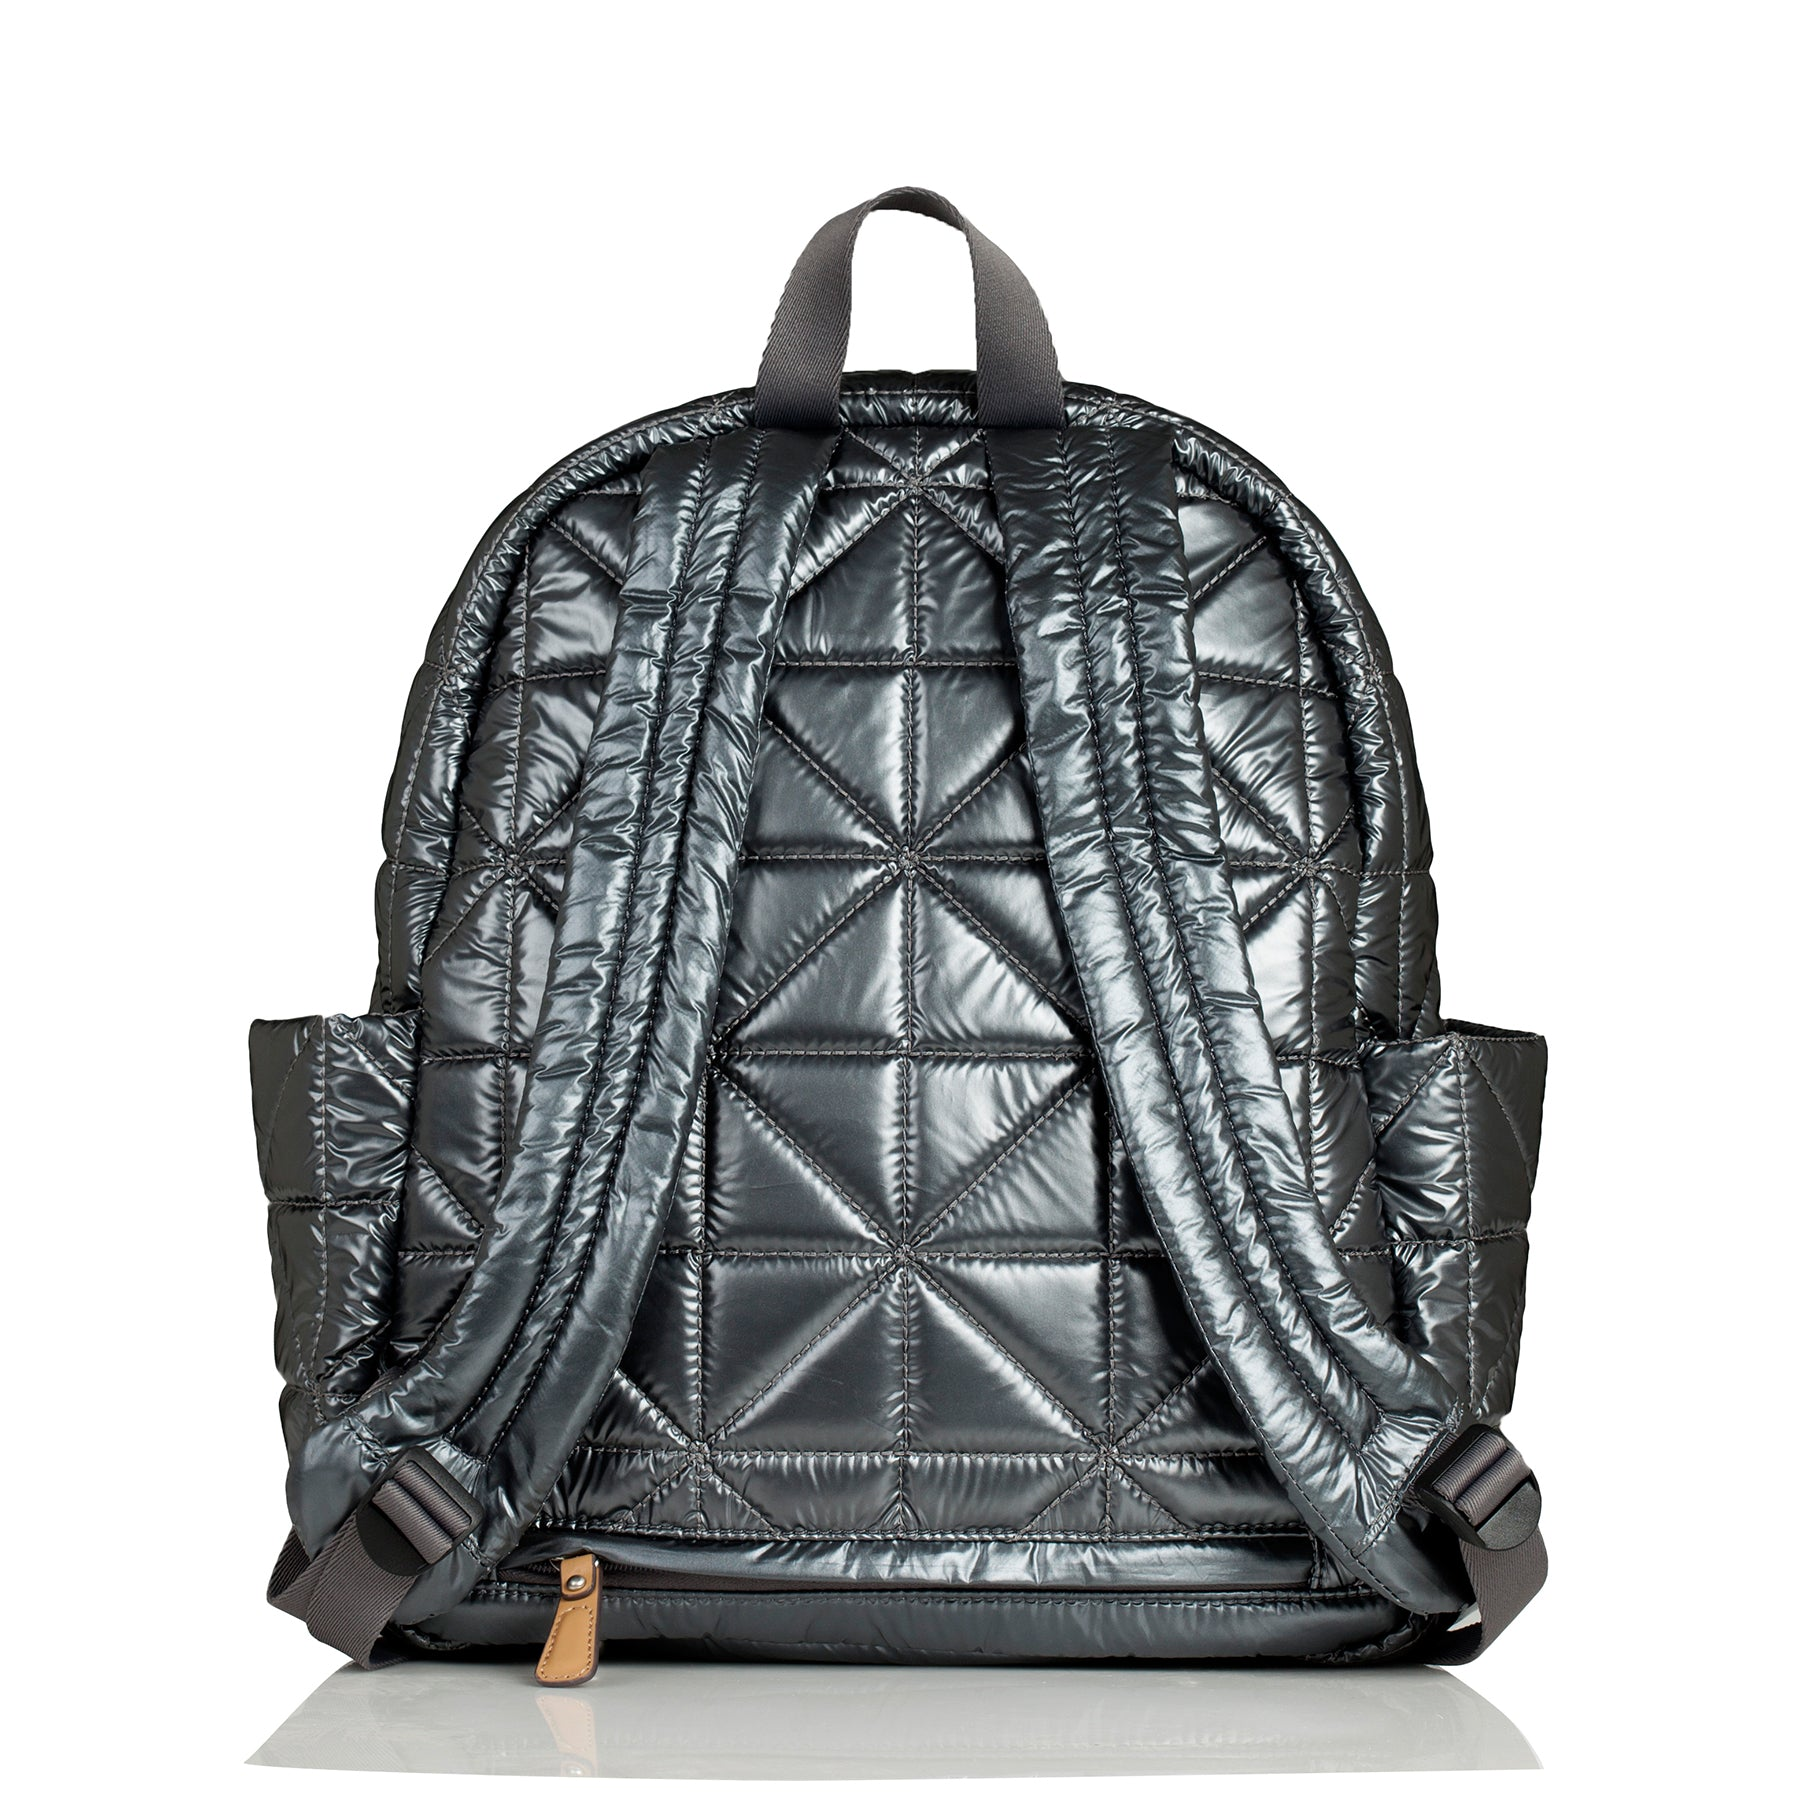 Back view of pewter companion backpack